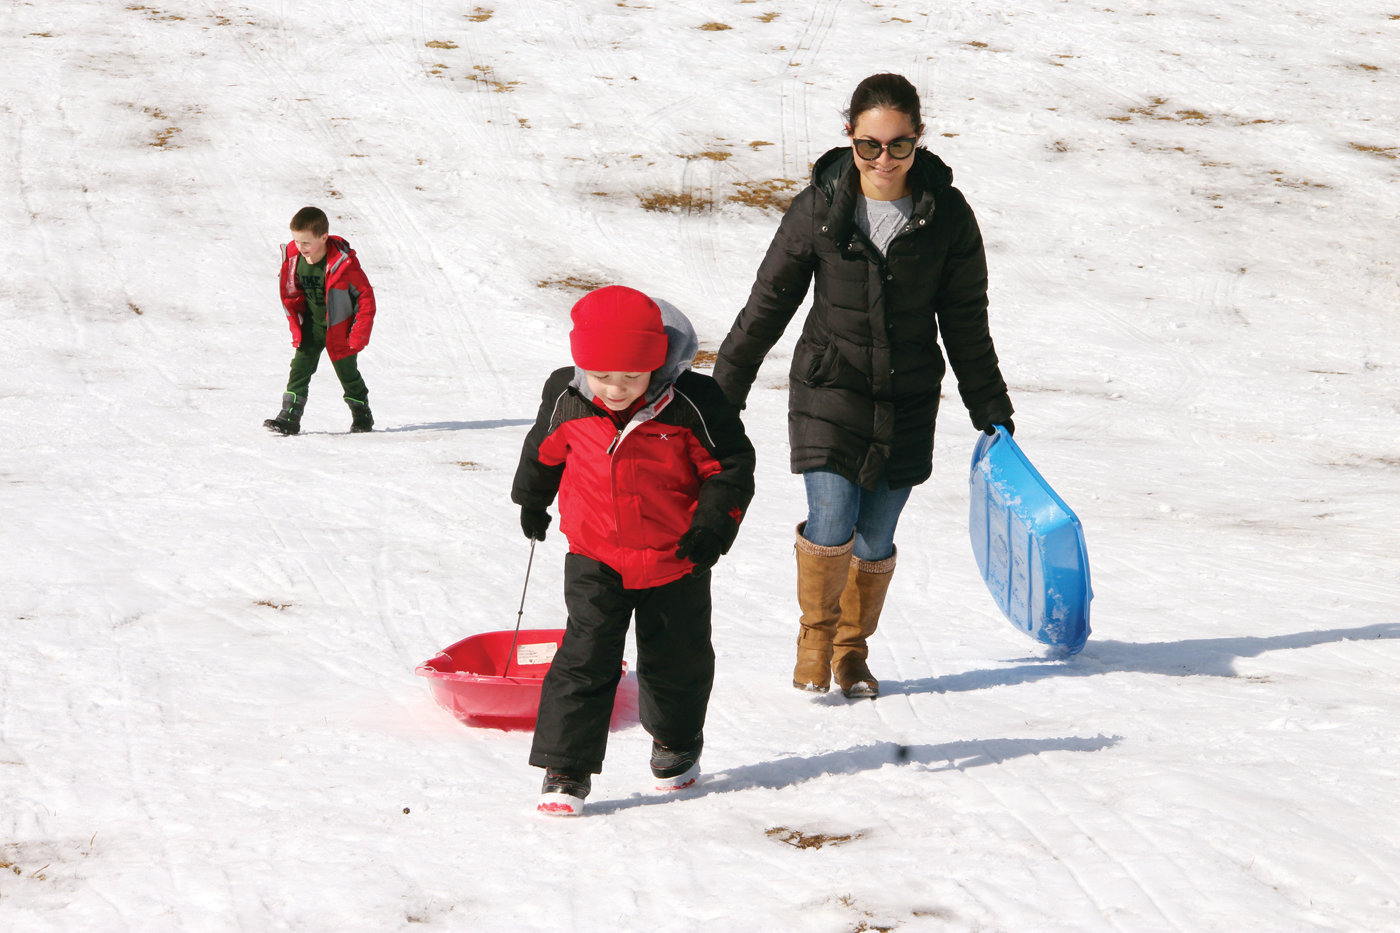 THE CLIMB BACK UP: Claudia Pacheco and her son Ethan head up the hill for another run.